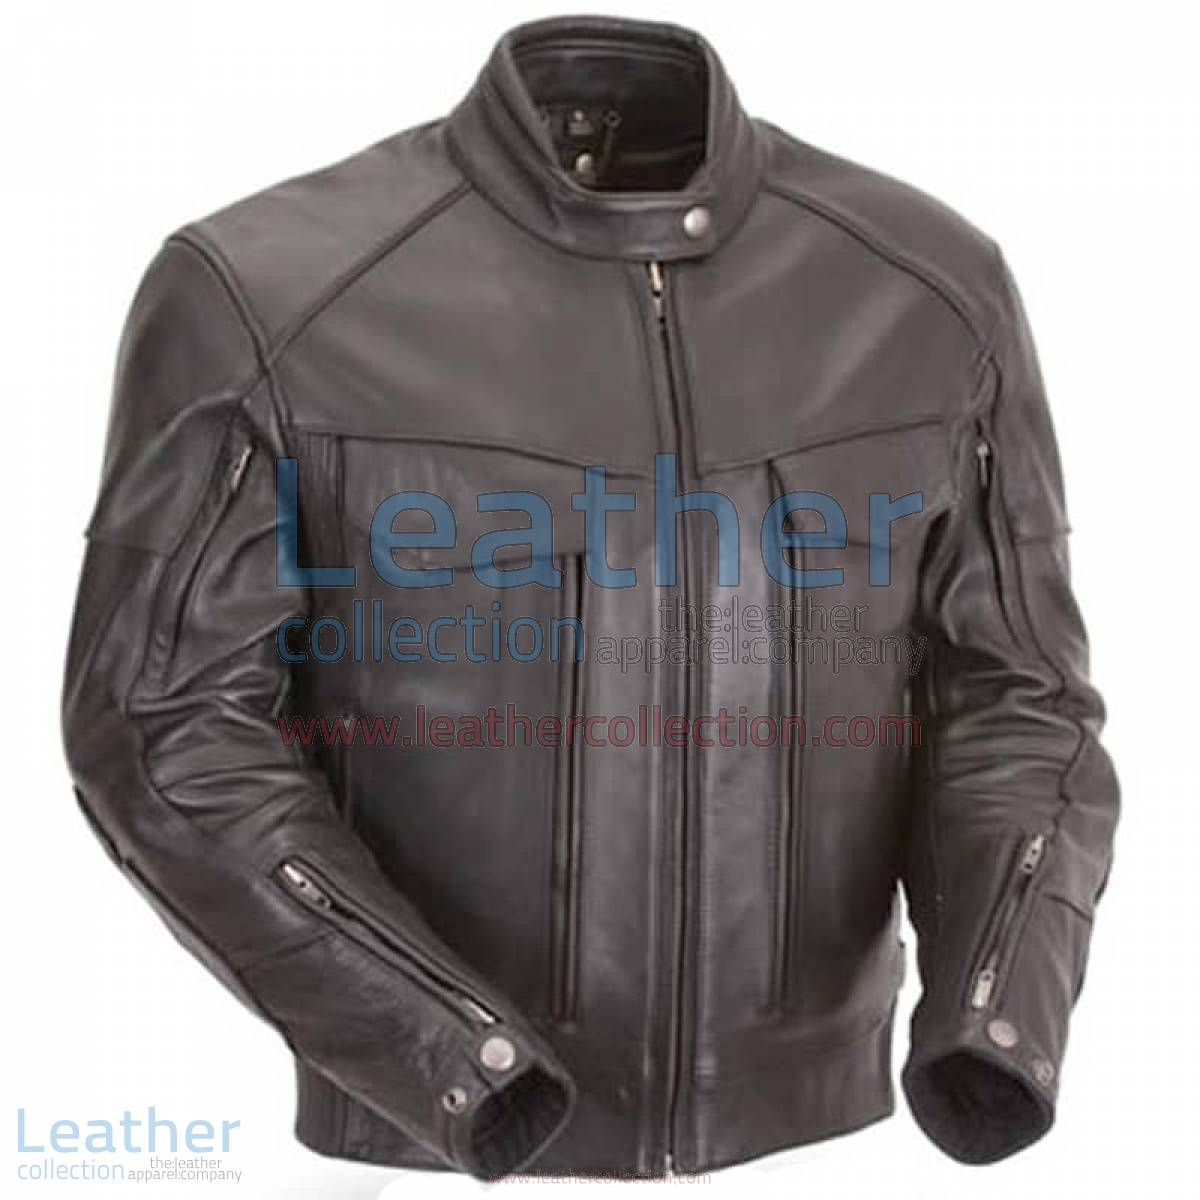 Naked Leather Riding Jacket with Gun Pockets & Side Stretch Panels | riding jacket,leather riding jacket